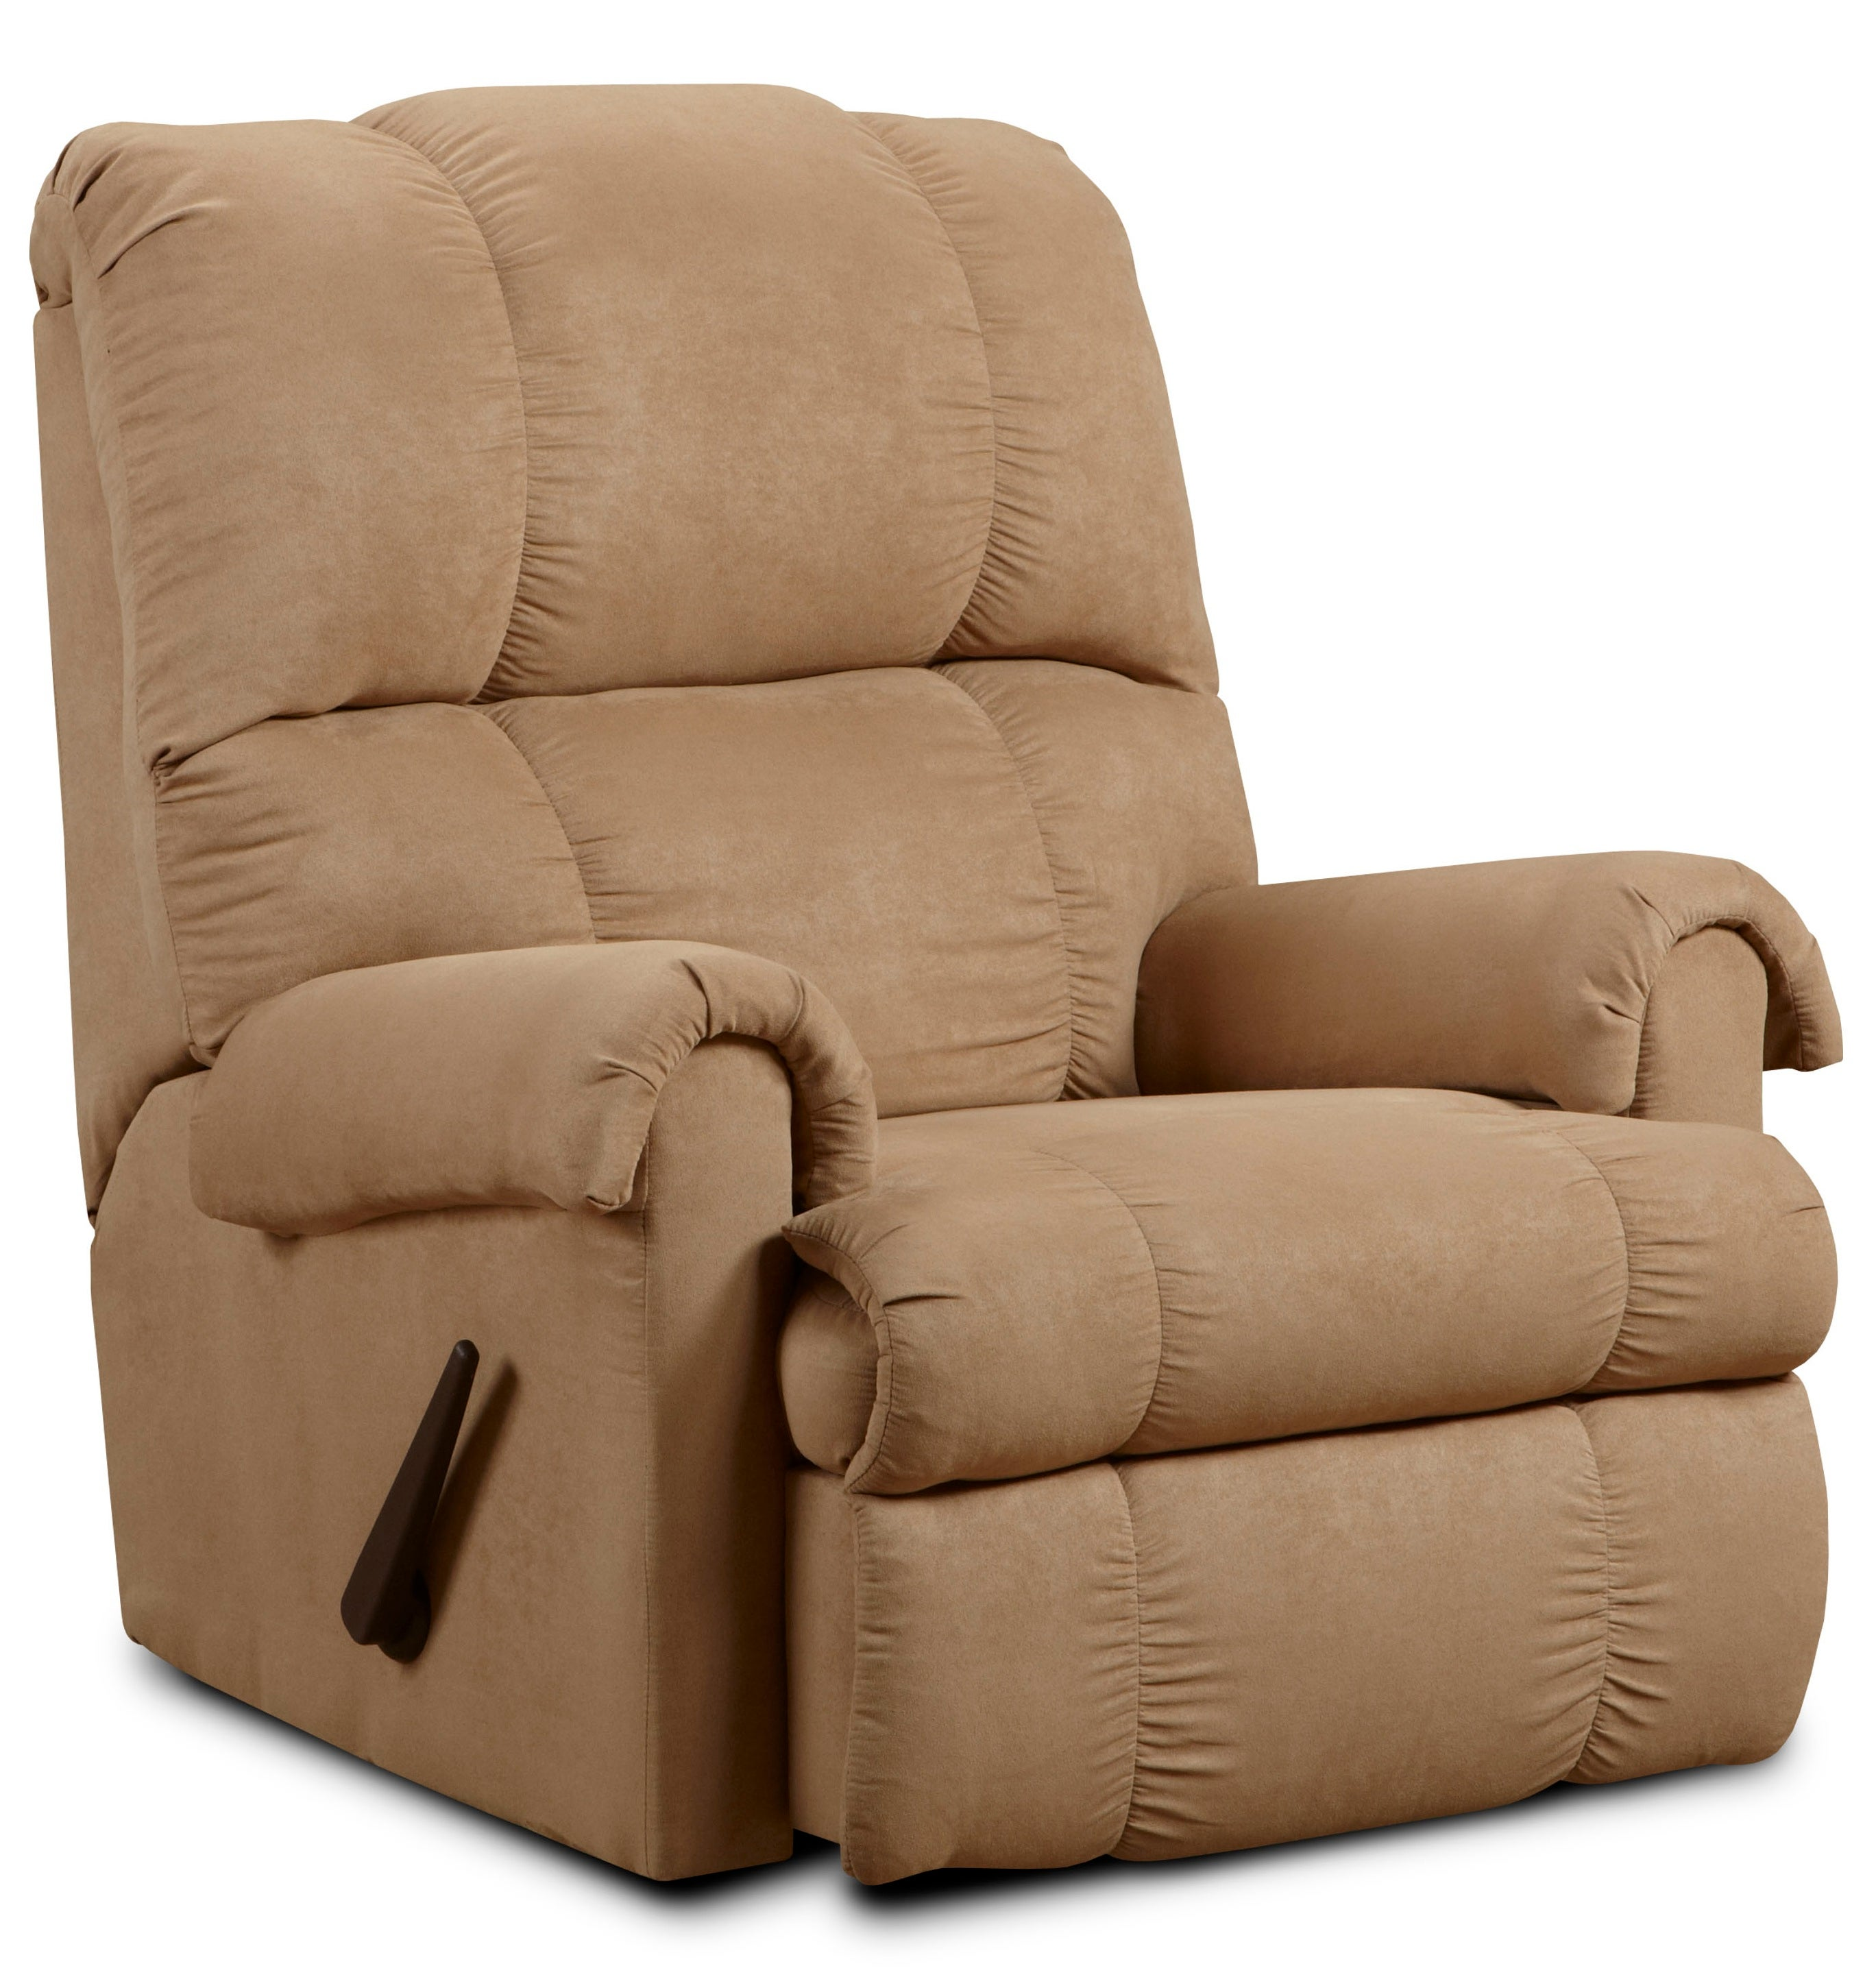 Victory Lane Rocker Recliner 8700 BUFF  sc 1 st  Rural King & Search Results for Recliners : Rural King islam-shia.org